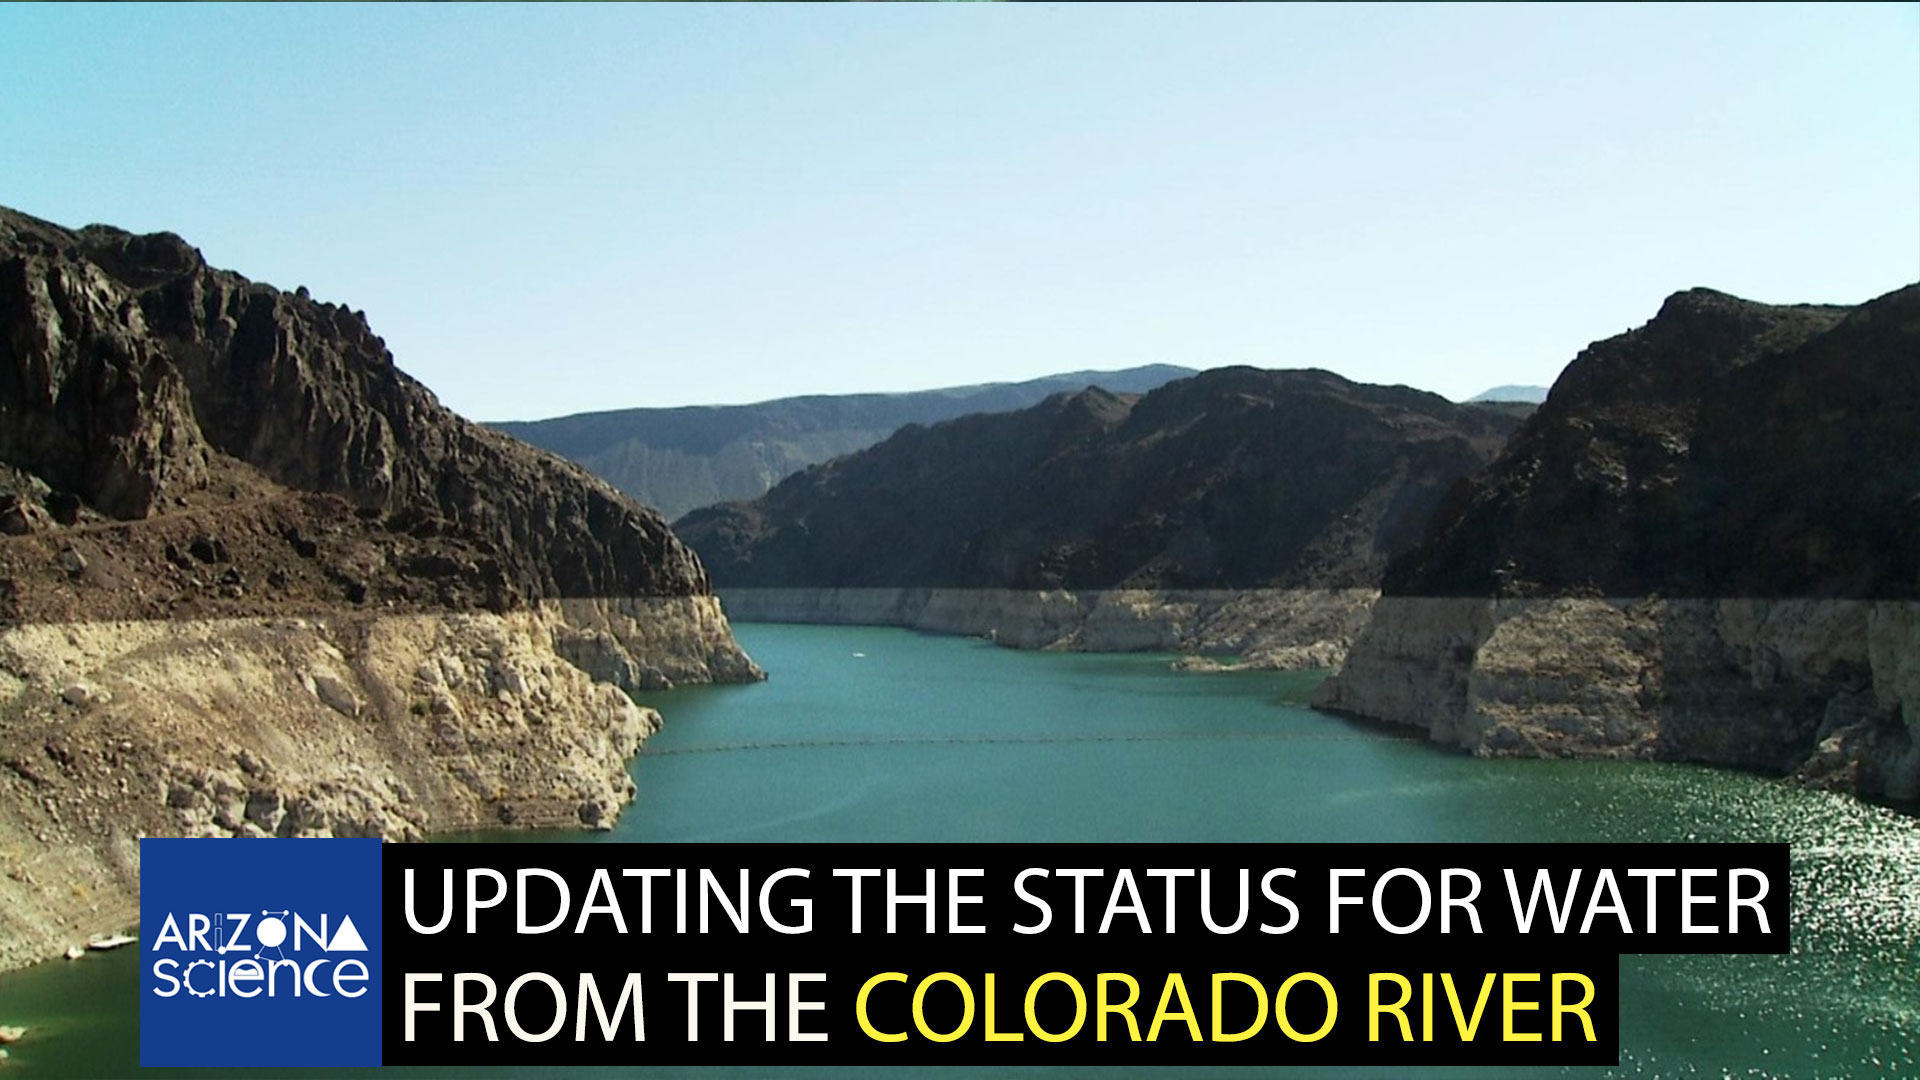 Episode 274: Updating the status for water from the Colorado River